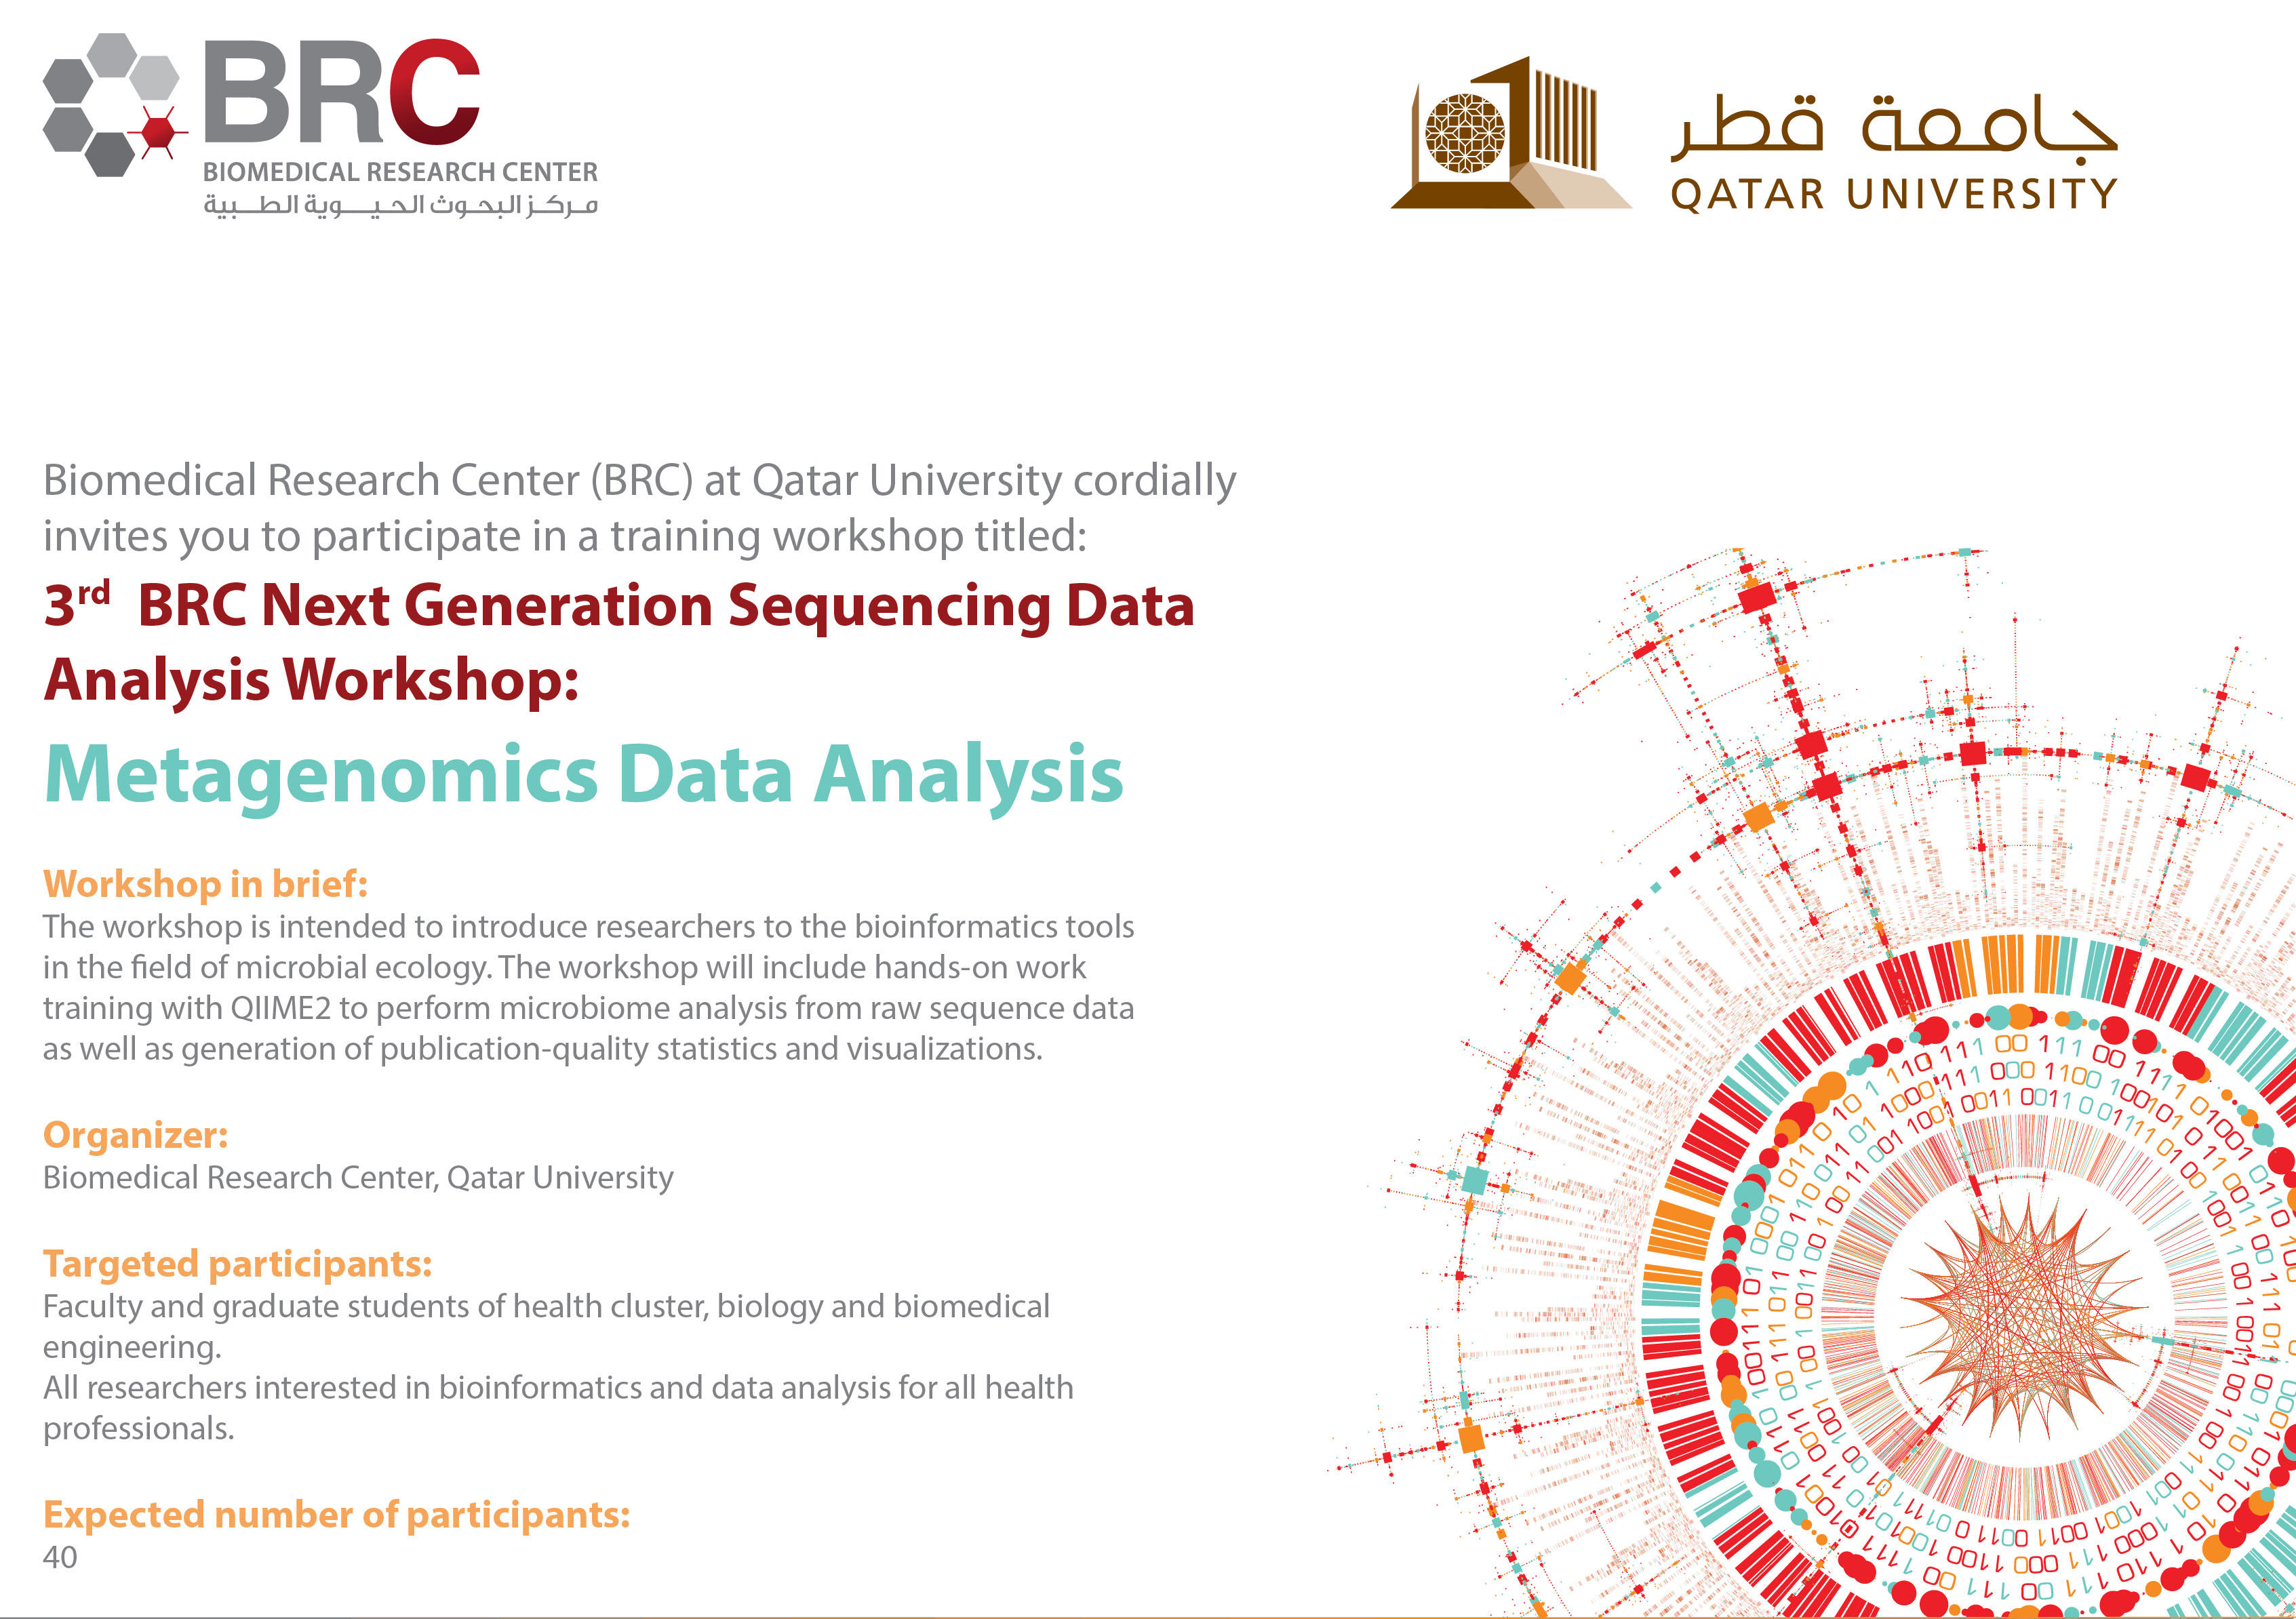 3rd second generation data analysis -Metagenomics Data Analysis